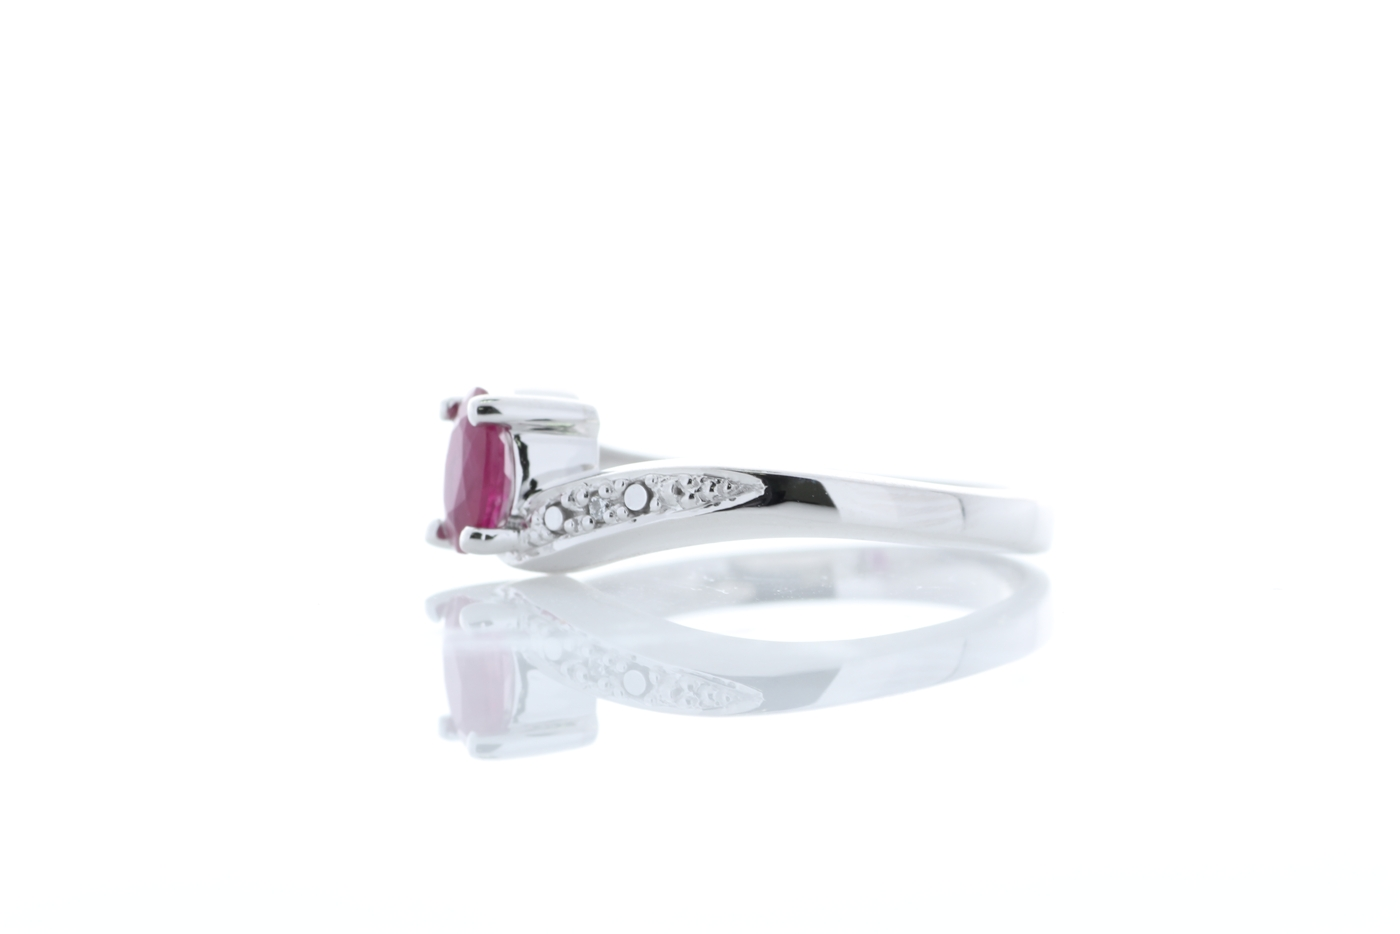 9ct White Gold Diamond And Ruby Ring 0.01 Carats - Image 2 of 4